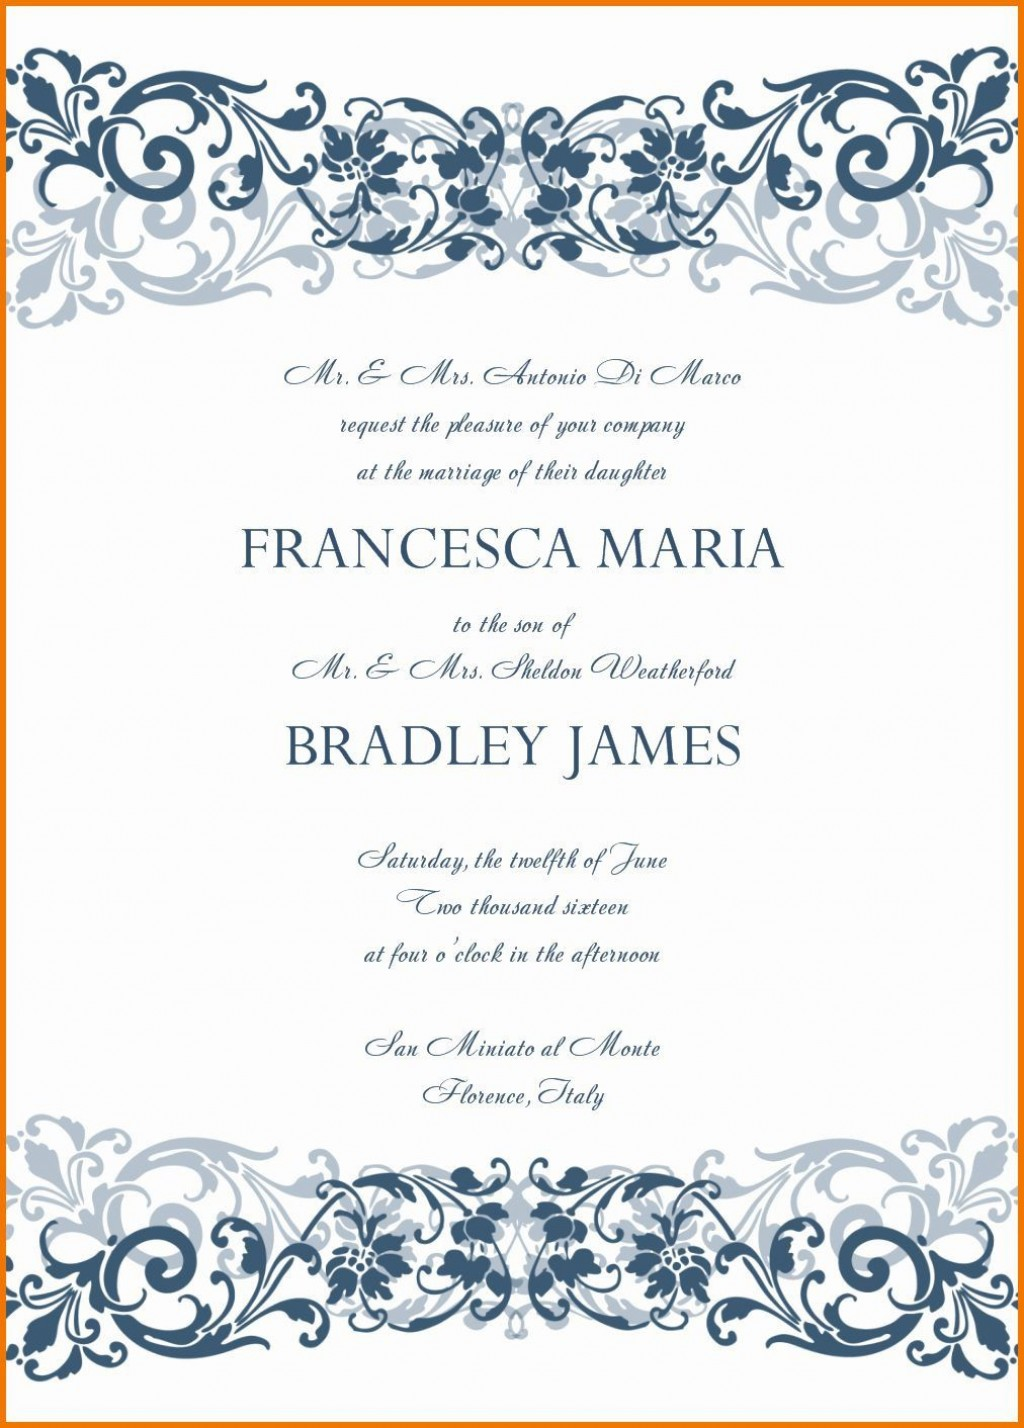 007 Unforgettable Microsoft Office Wedding Invitation Template Highest Clarity  Templates MLarge